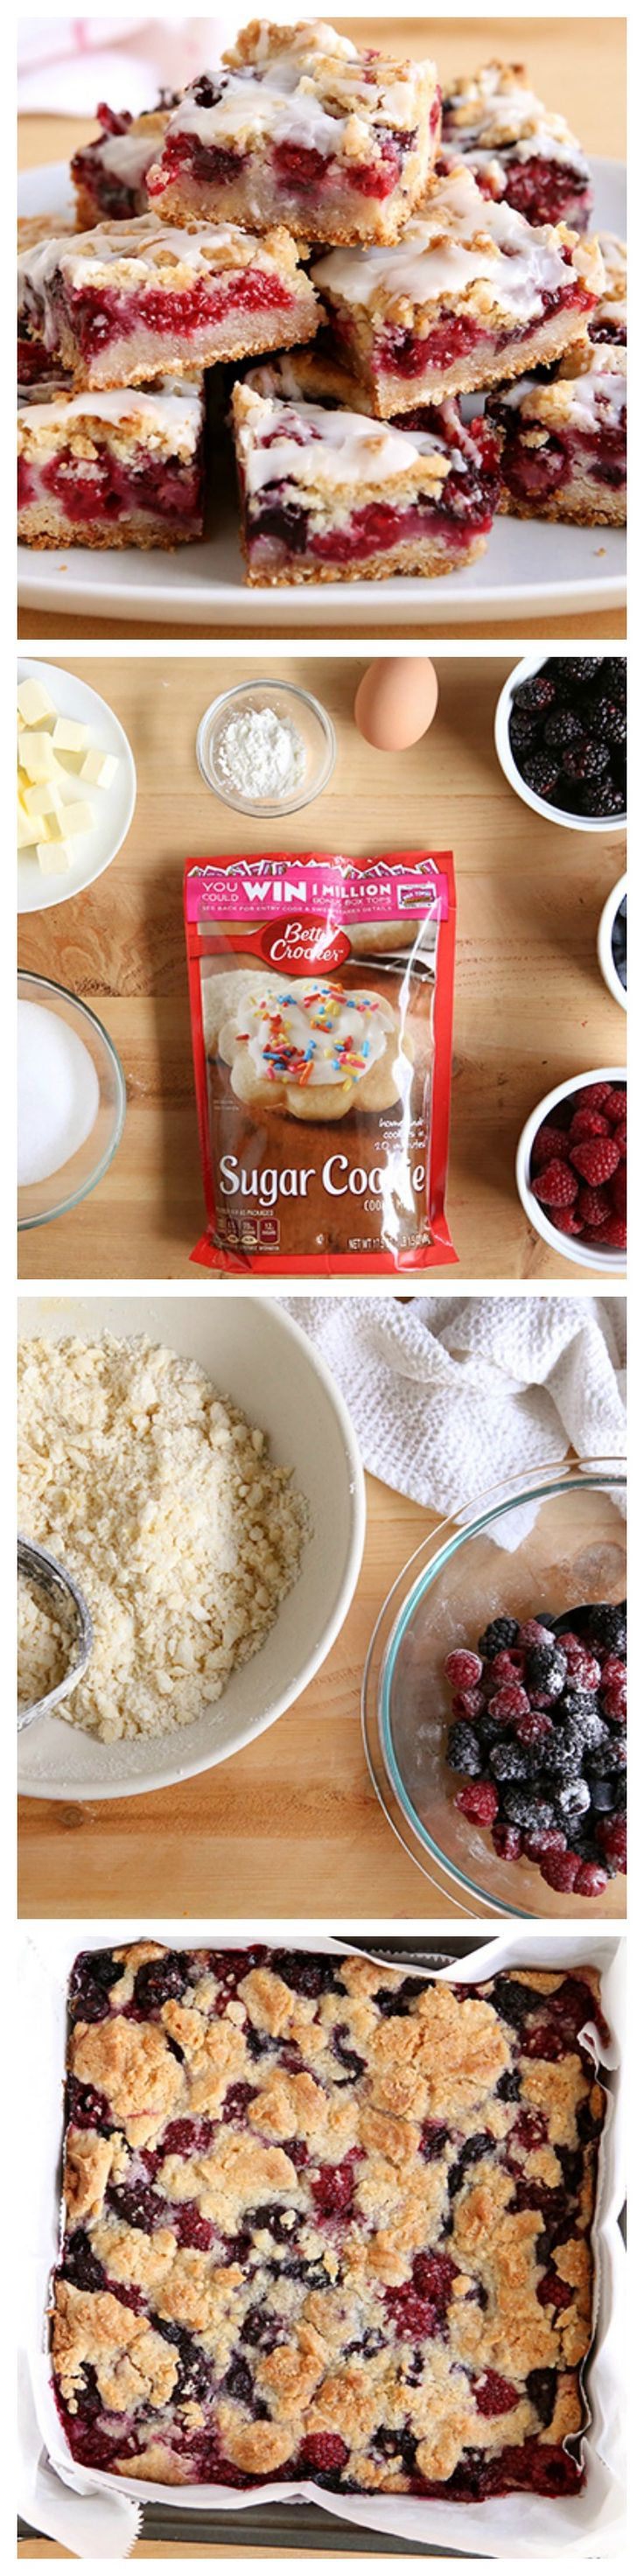 Wrap up your next feast with a spring-y sweet made with fresh berries and Betty Crocker sugar cookie mix.